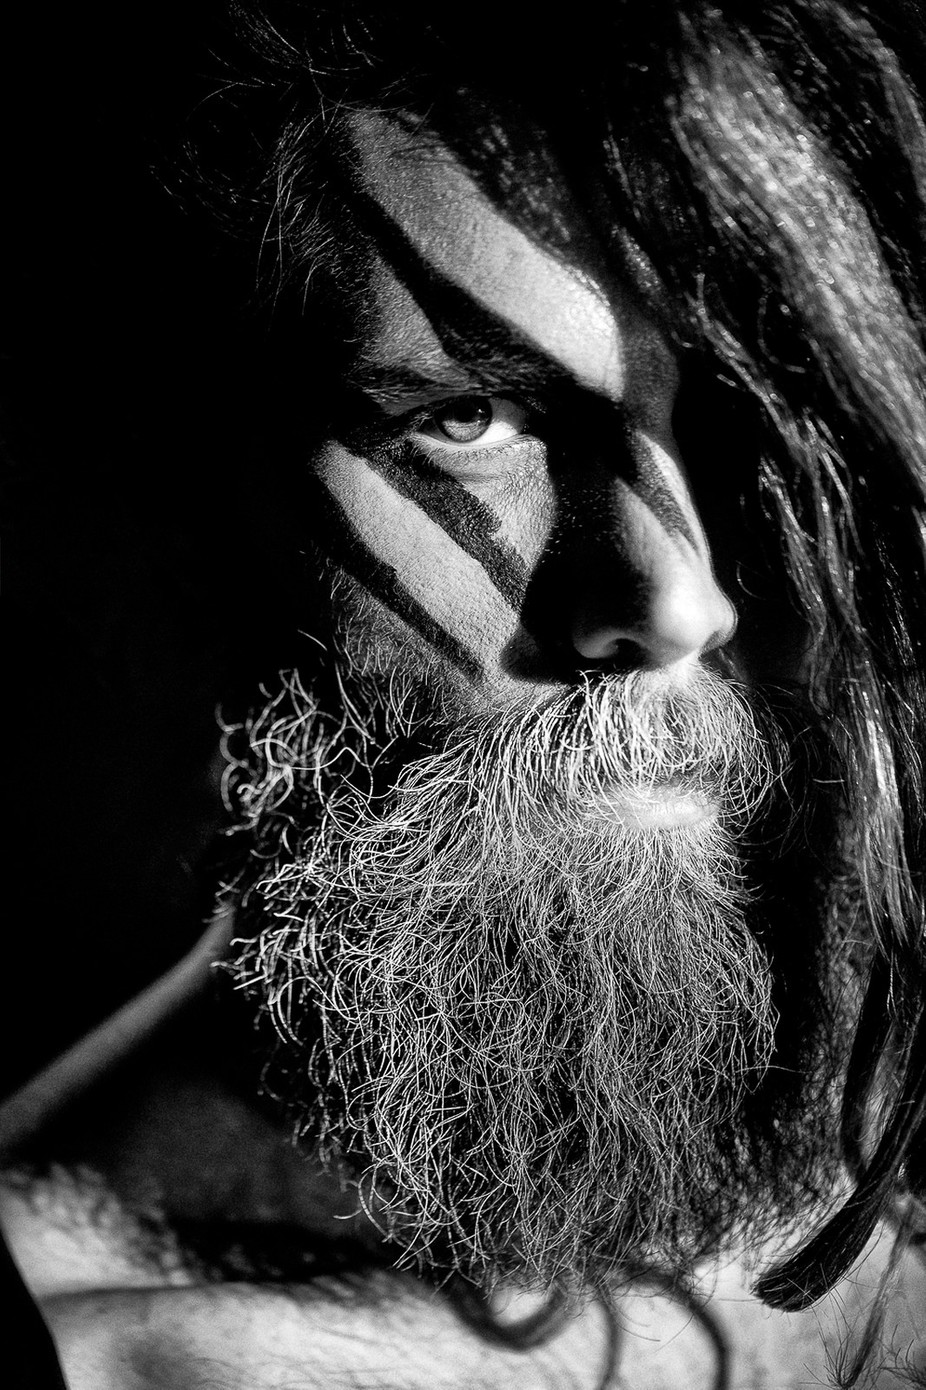 F for Fierce by akapov - Beards and Mustaches Photo Contest